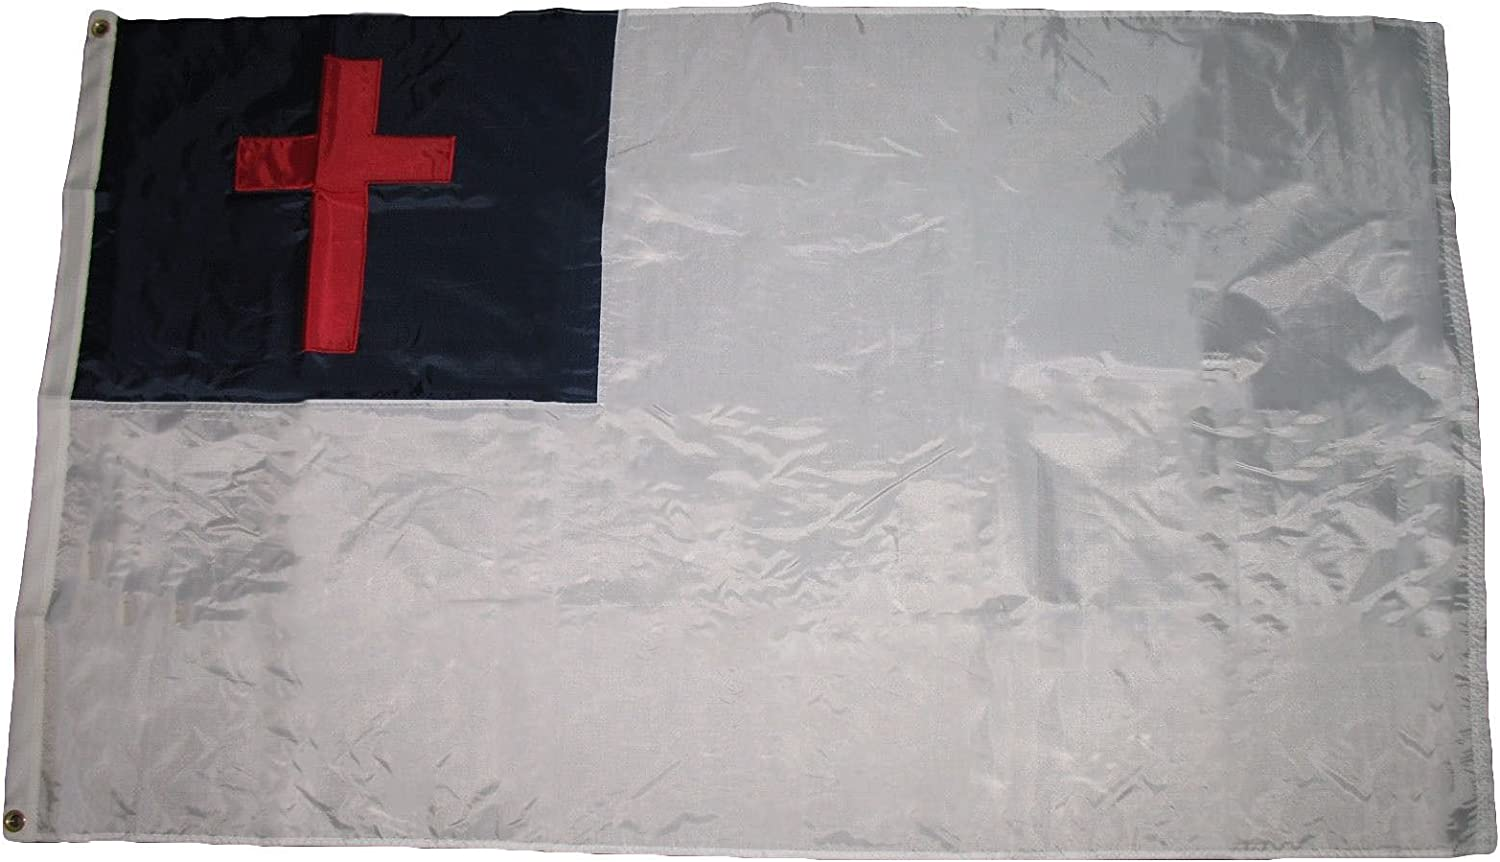 NORTH SHORE HOME AND GARDEN 3'x5' Christian Flag (Sewn Cross) - 100% American Made - Outdoor Nylon - Premium Quality 3x5 Embroidered Christian Christ Cross 200D Sewn Nylon Flag 3'x5' Made in USA